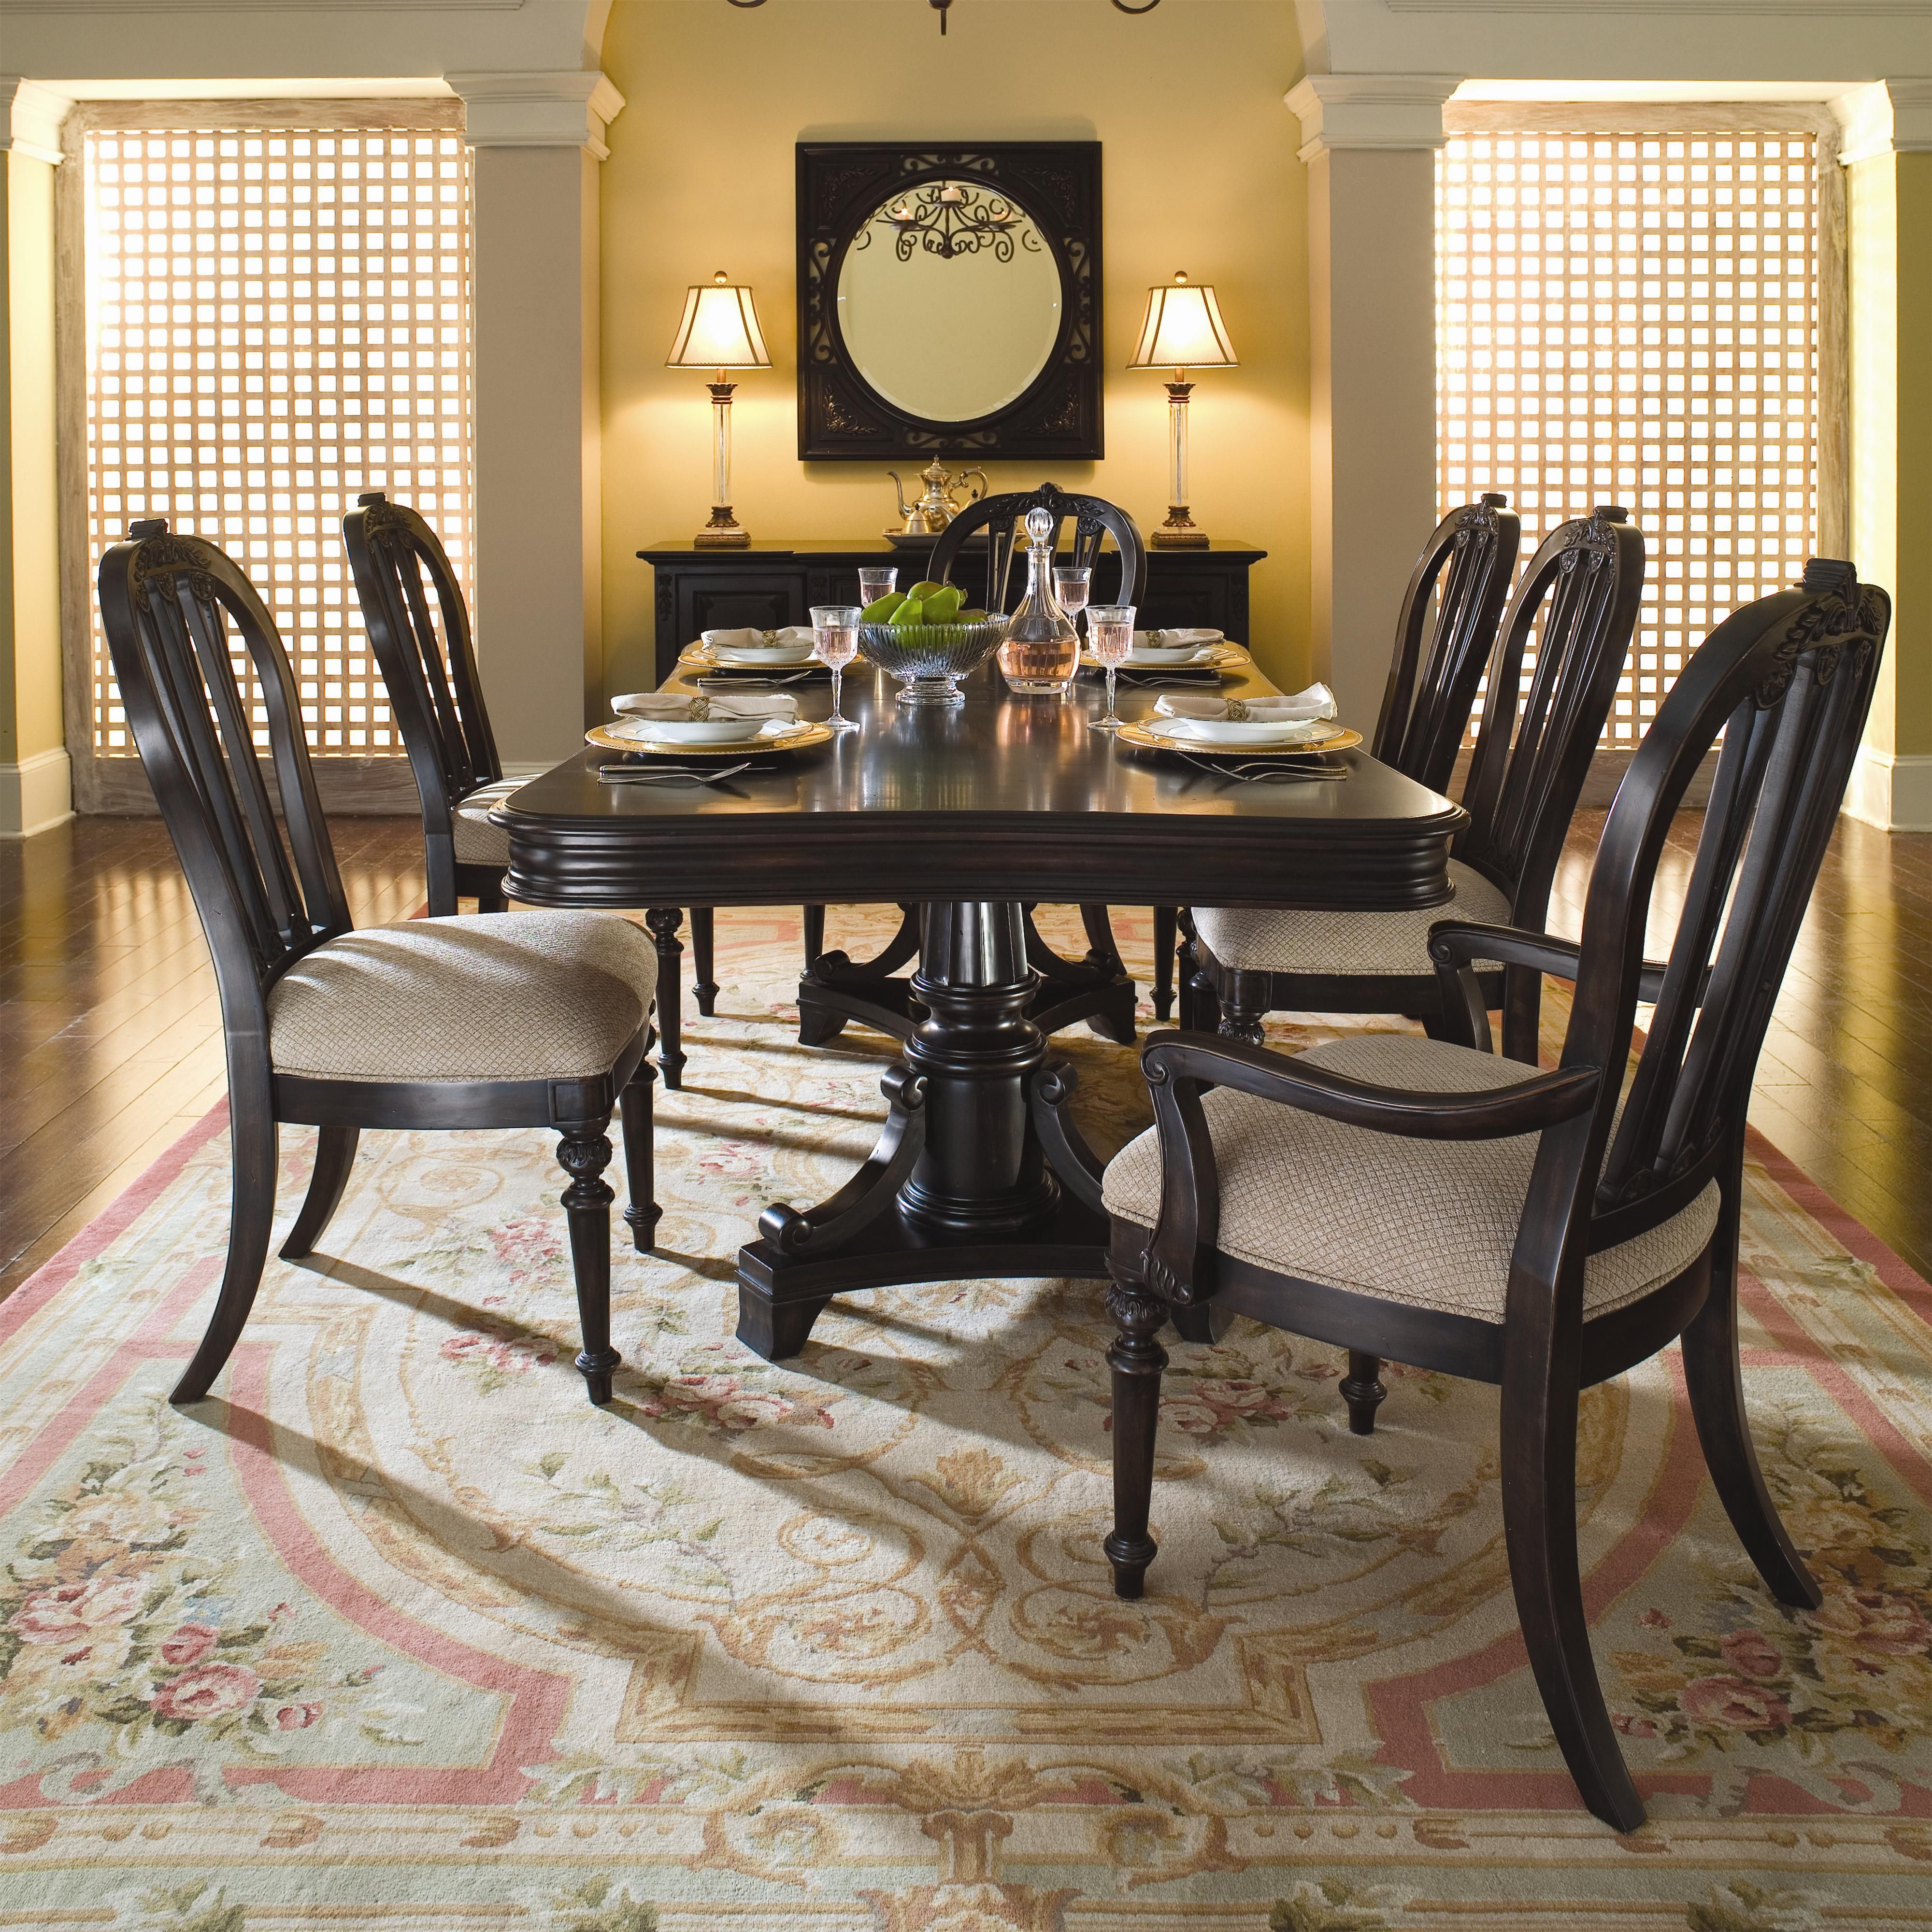 Sturlyn 7 Piece Table Metal Dining Room Round Dining Room Sets Black Dining Room Furniture